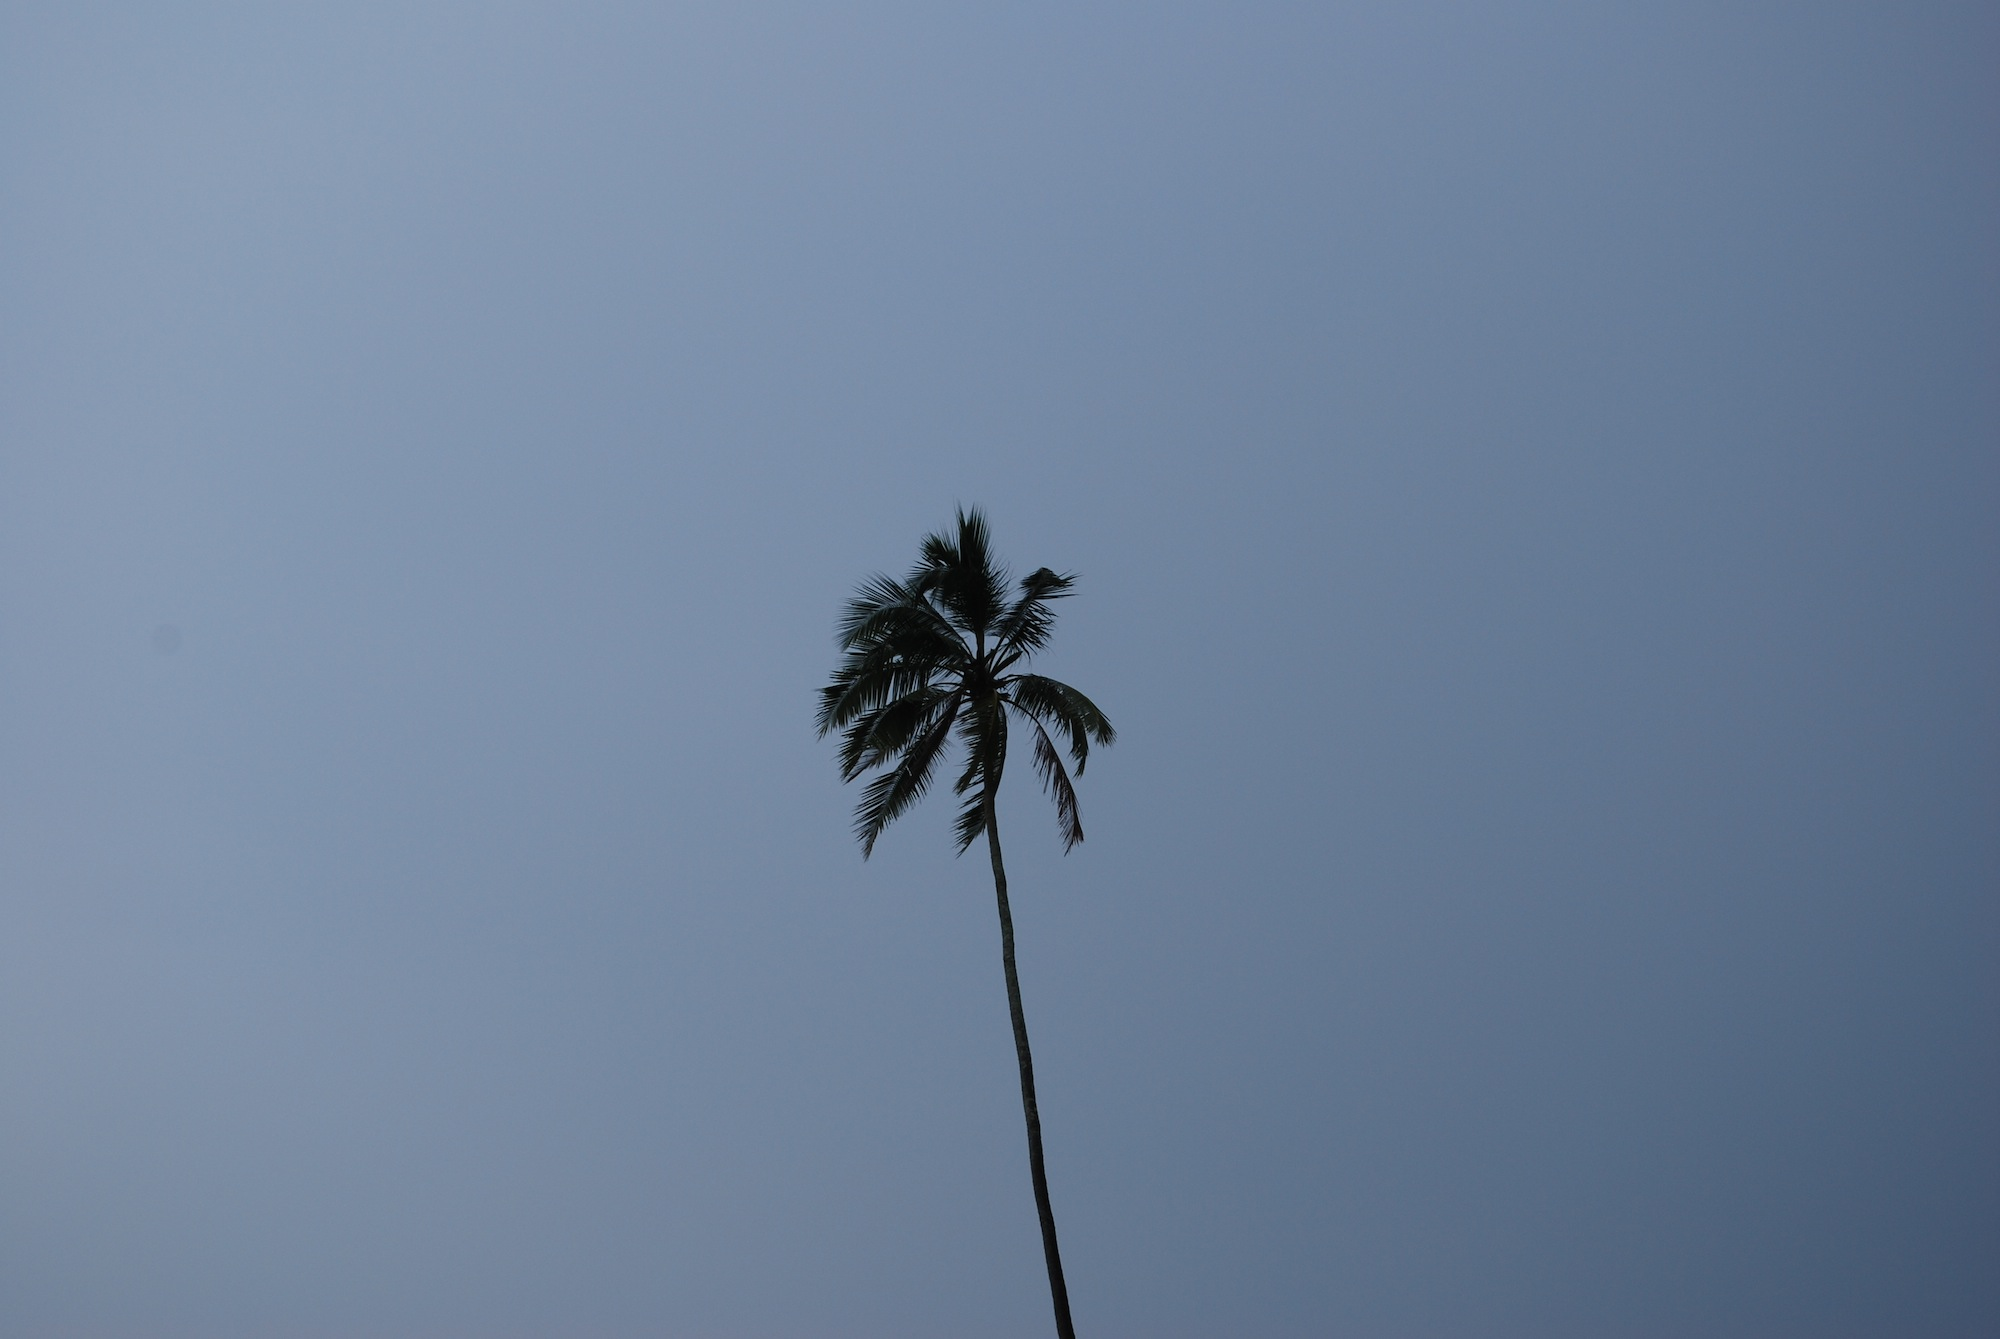 Palm tree reaching up to the sky